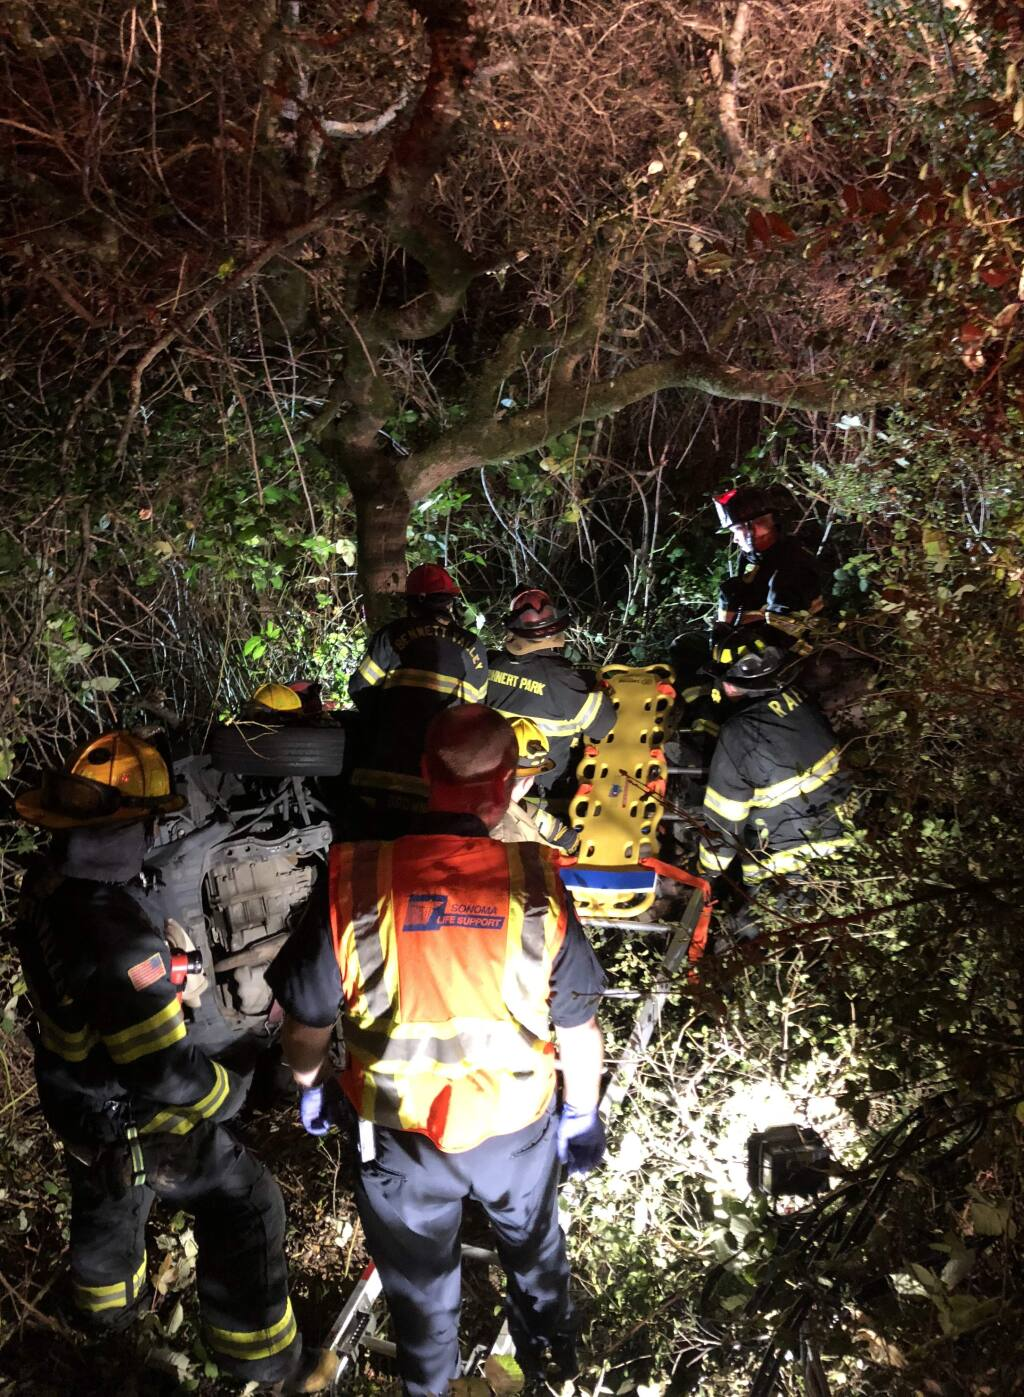 Emergency crews rescue a driver after a crash on Crane Canyon Road on Wednesday, Oct. 10, 2018. (COURTESY OF RANCHO ADOBE FIRE CAPTAIN JIMMY BERNAL)